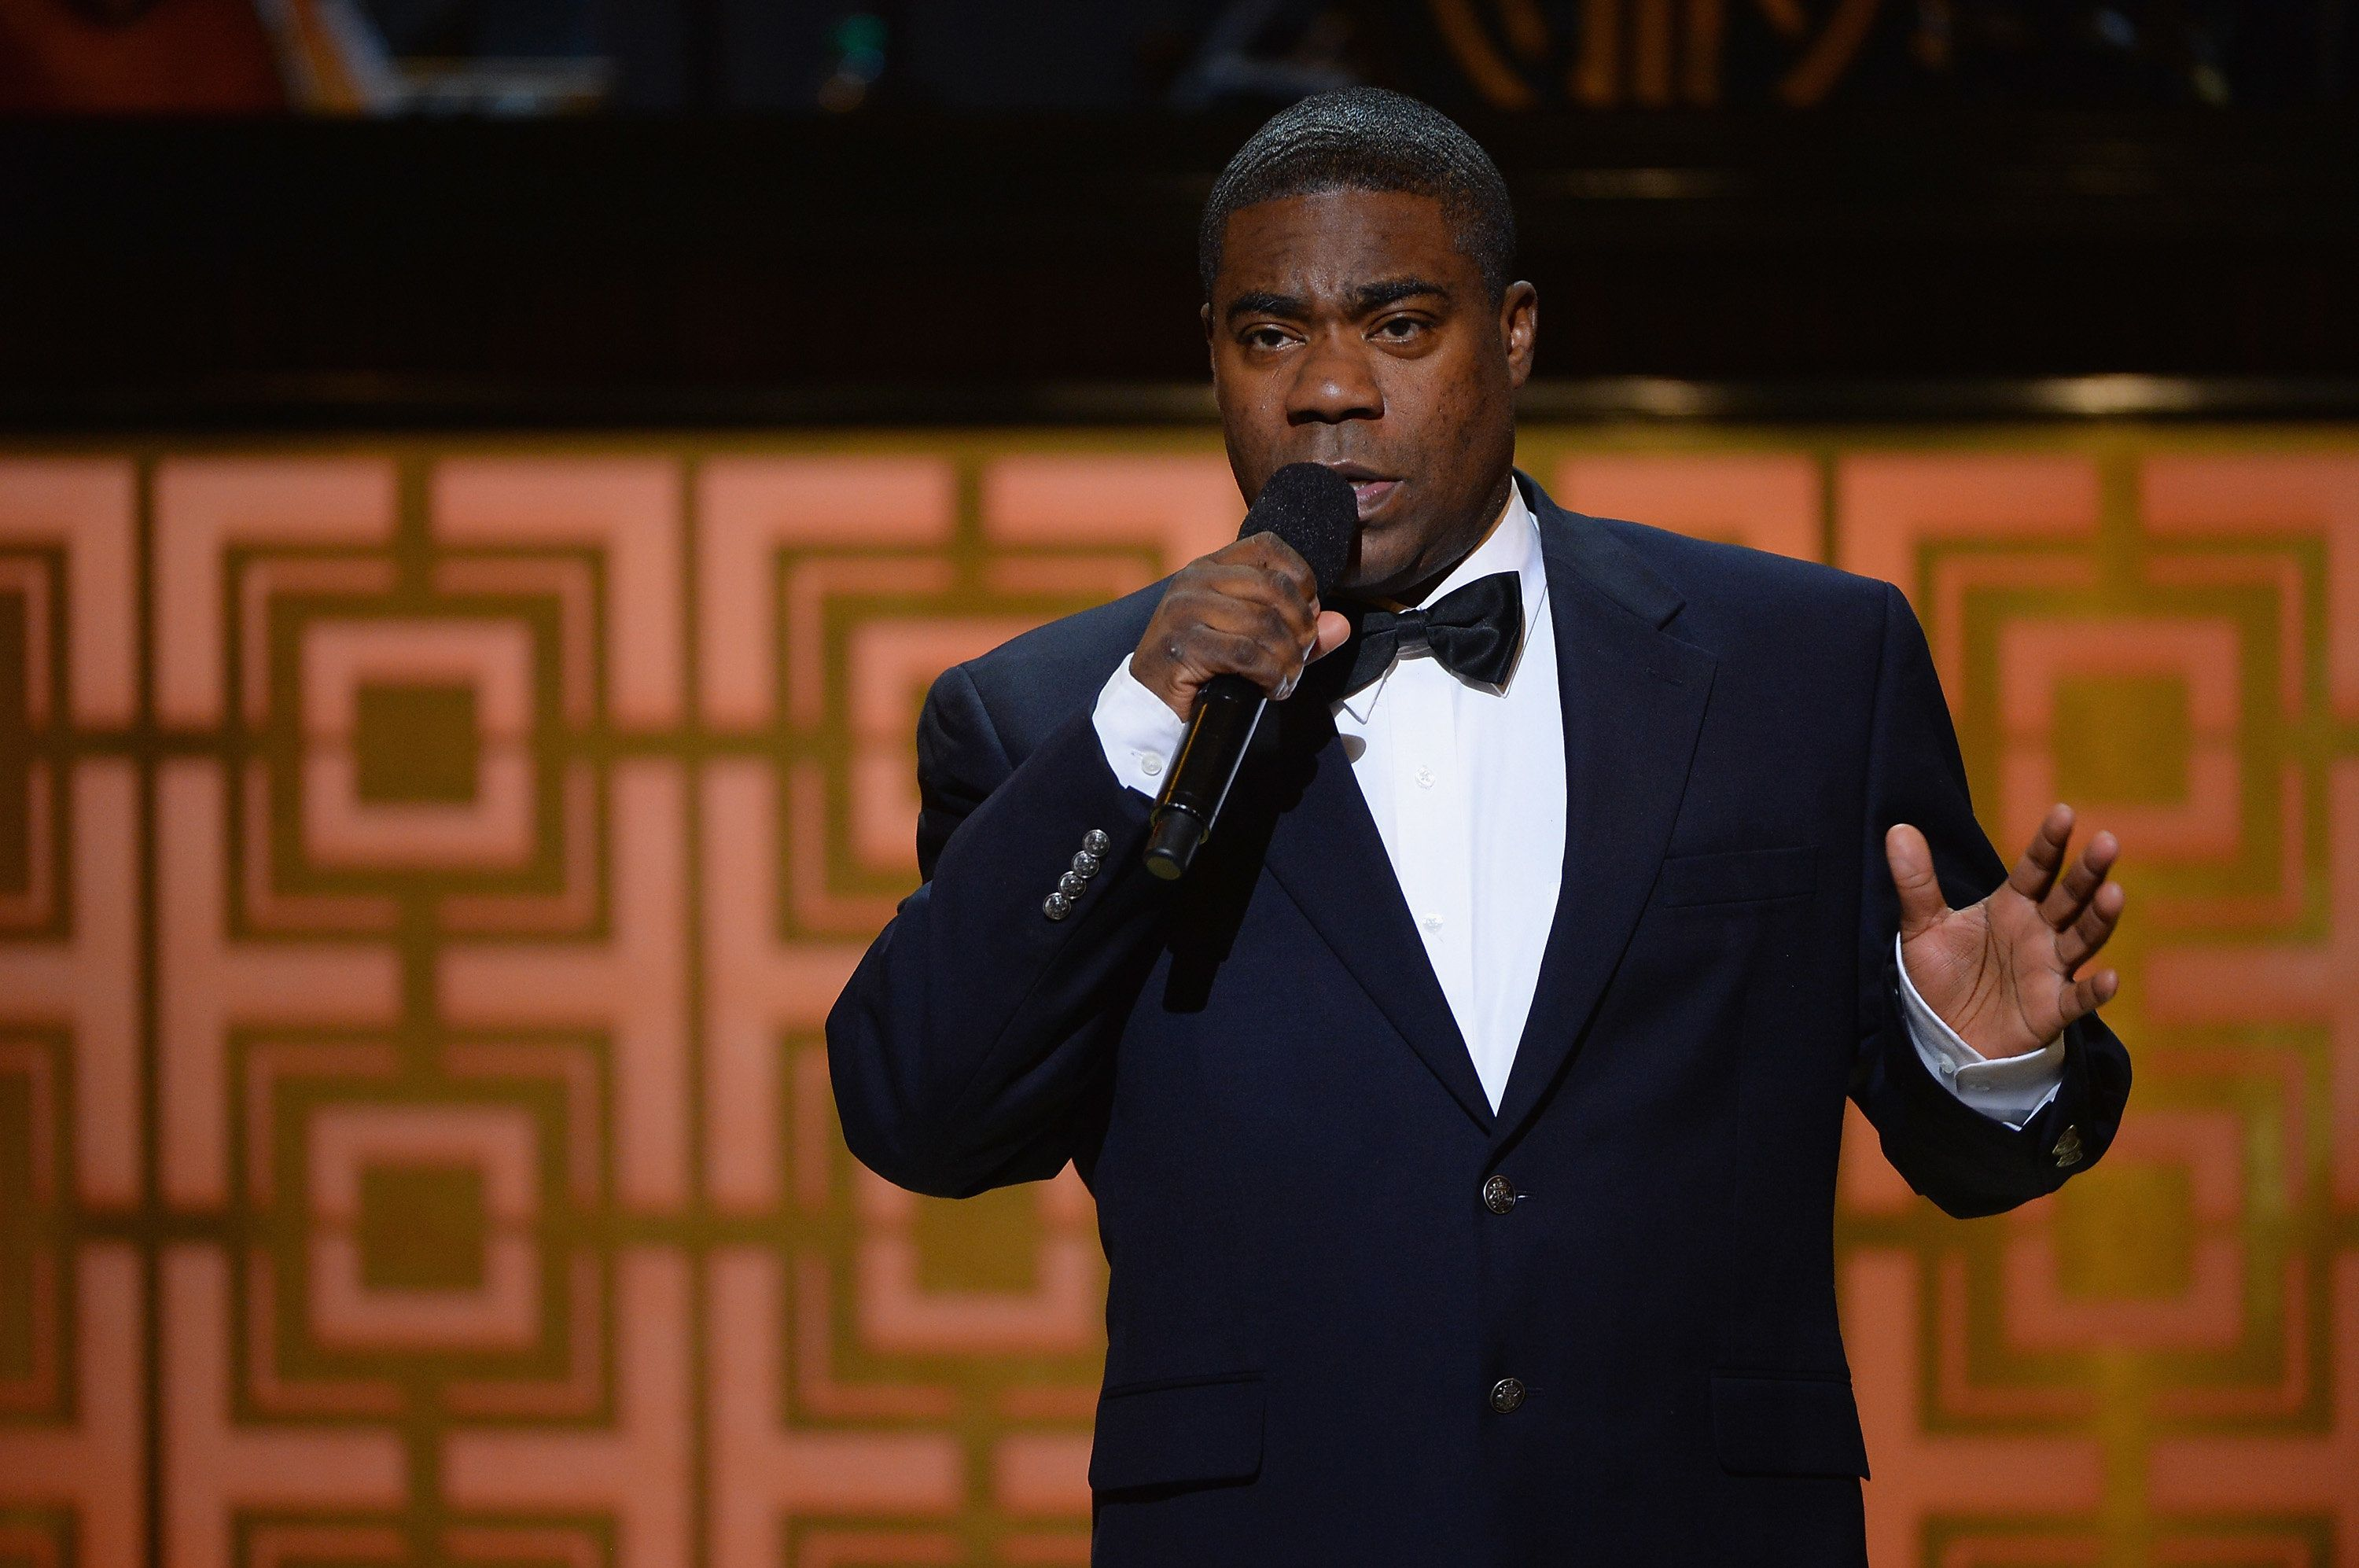 NEW YORK, NY - MAY 06:  Tracy Morgan speaks onstage at Spike TV's 'Don Rickles: One Night Only' on May 6, 2014 in New York City.  (Photo by Theo Wargo/Getty Images for Spike TV)